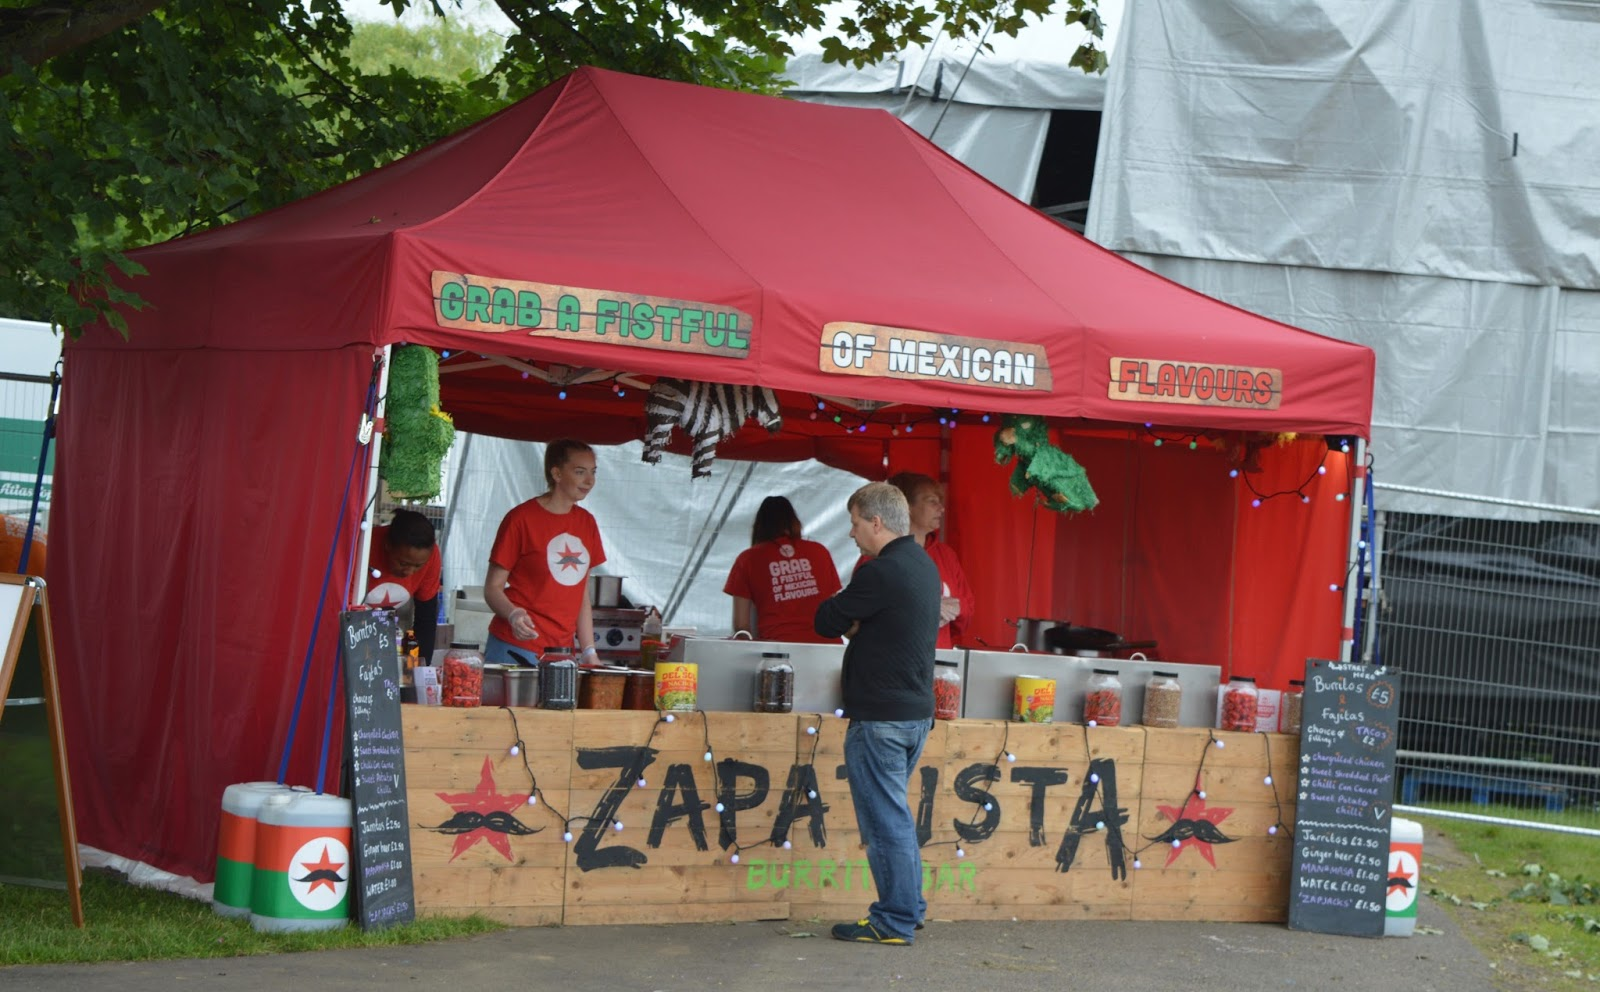 Corbridge Festival 2016 - A Review - Zapatista